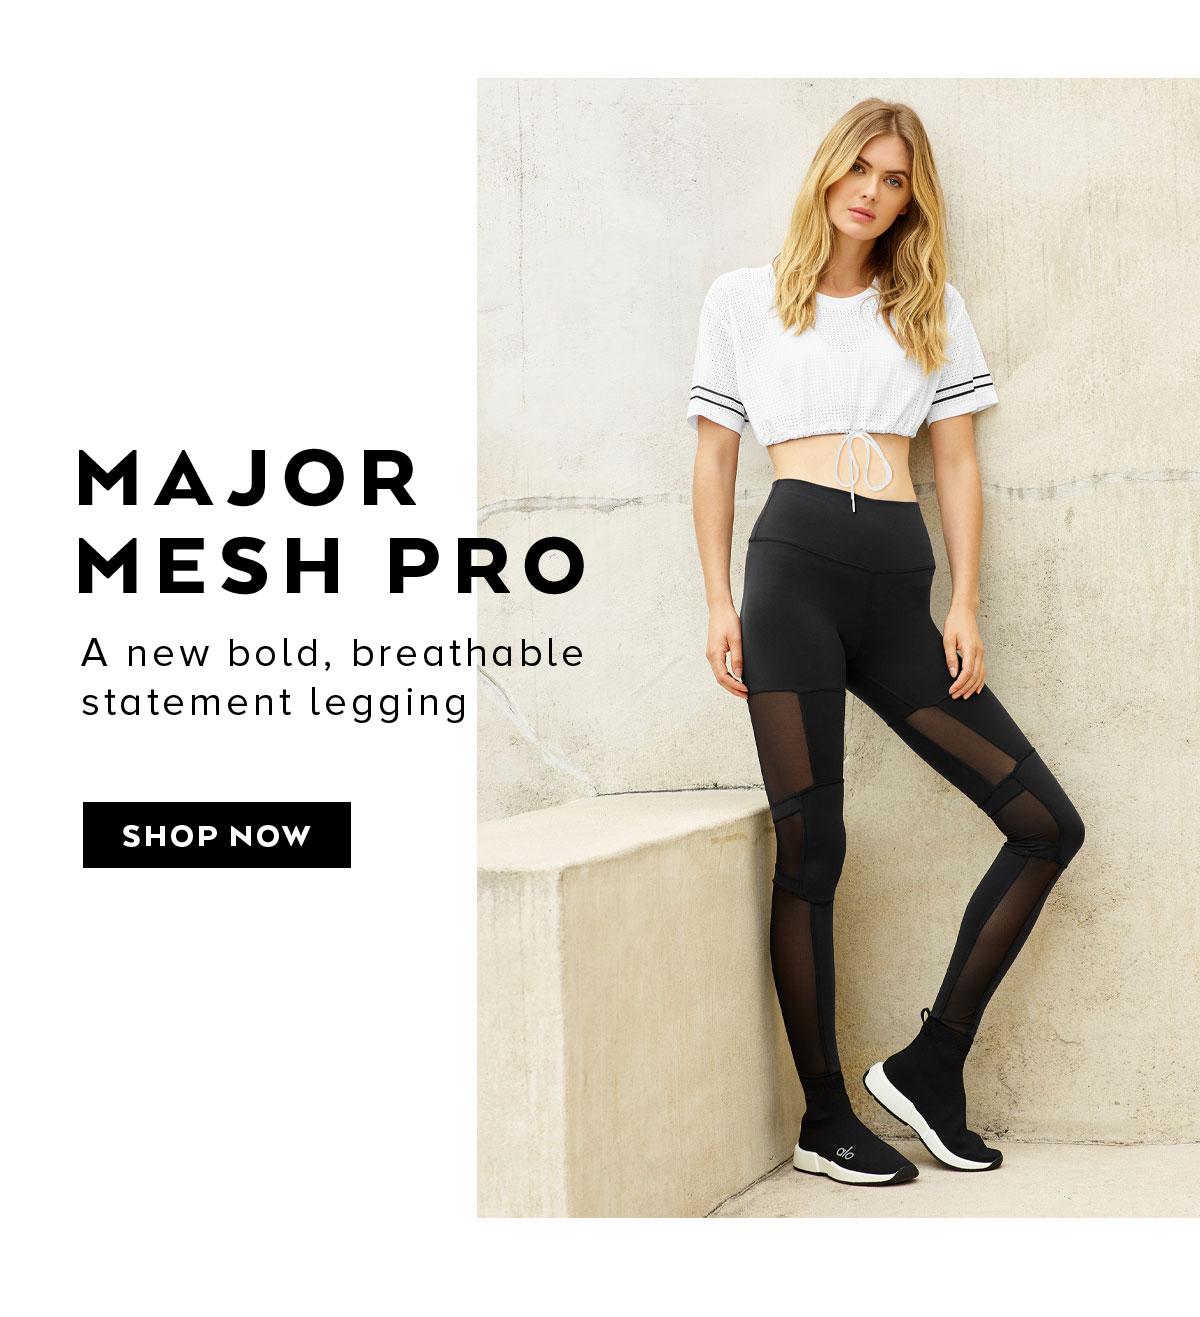 MAJOR MESH PRO. A new bold, breathable statement legging. SHOP NOW